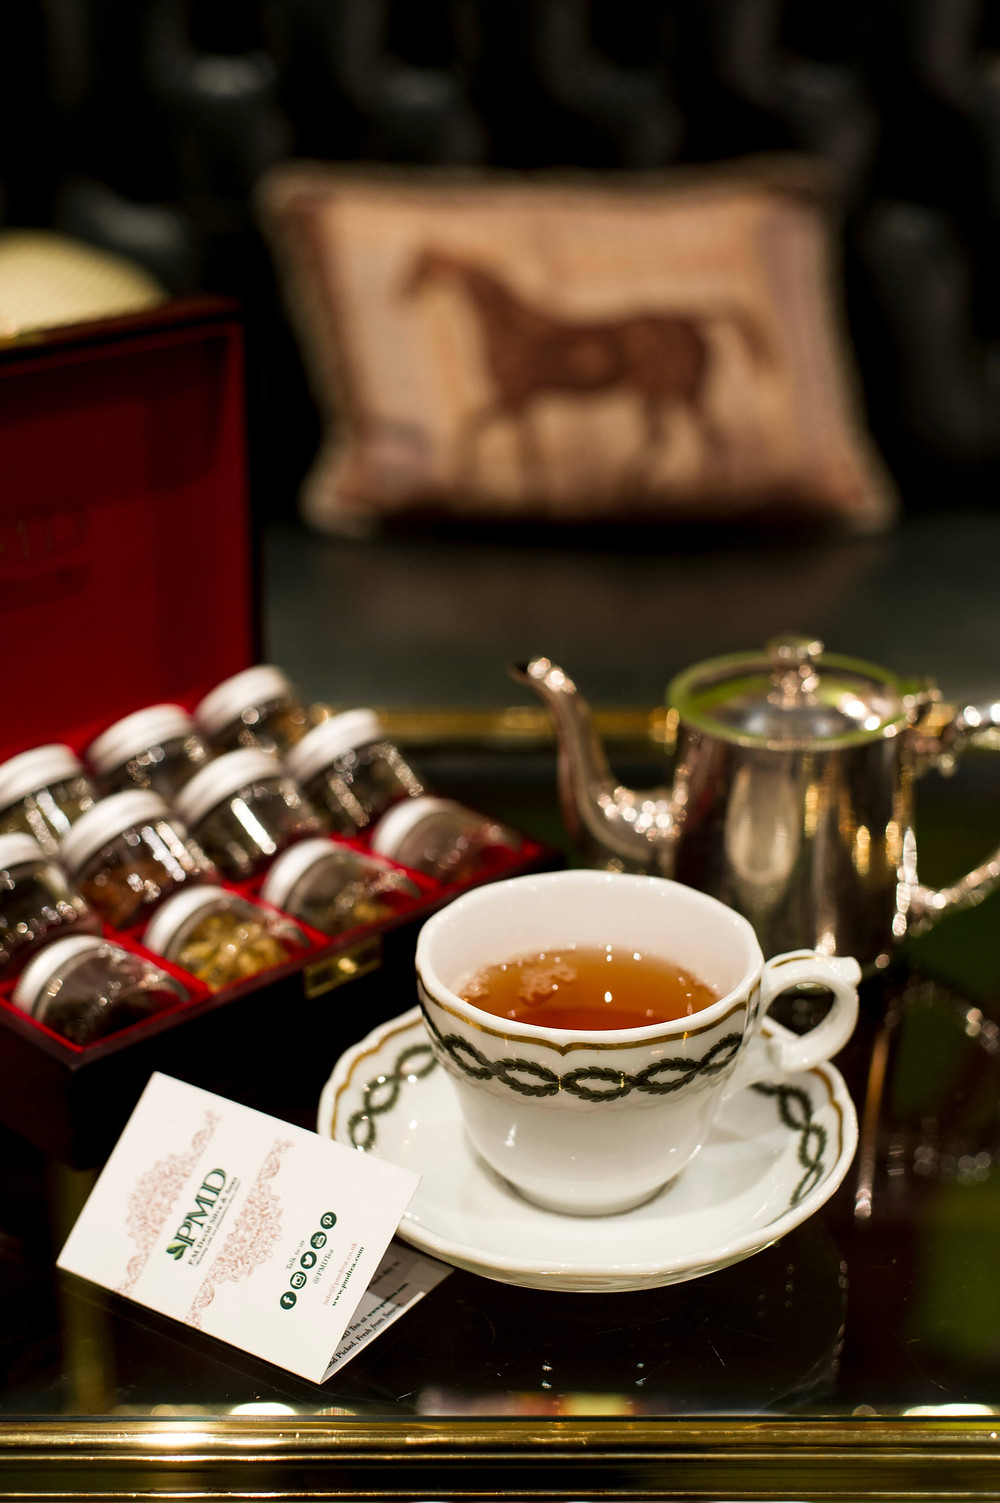 PMD Tea - Family tea company, ethically sourcing speciality single estate and single batch loose leaf tea, tea bag multipacks and exquisite tea-ware sets.